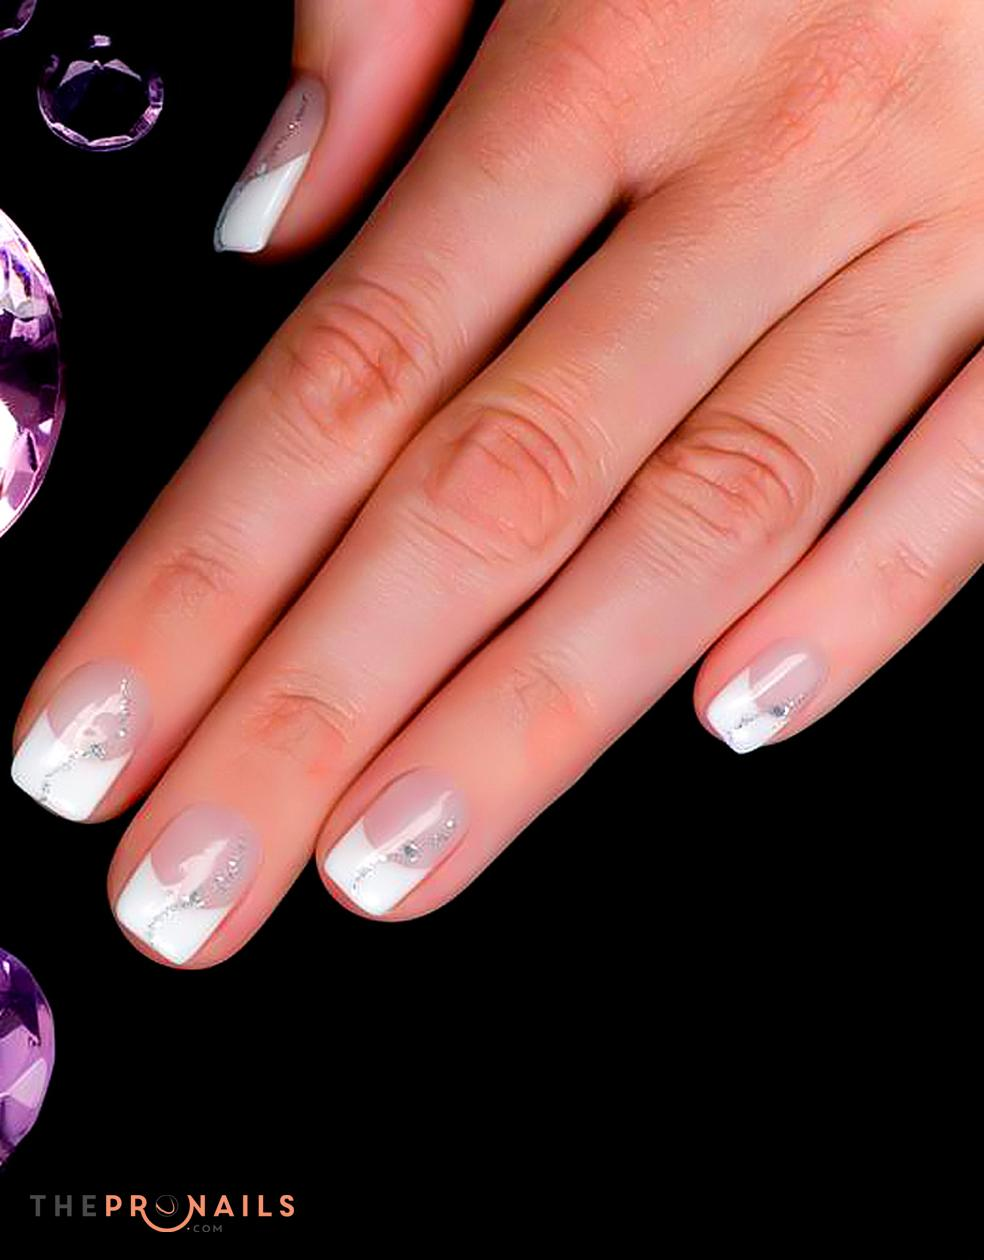 How To Use Builder Gel On Natural Nails